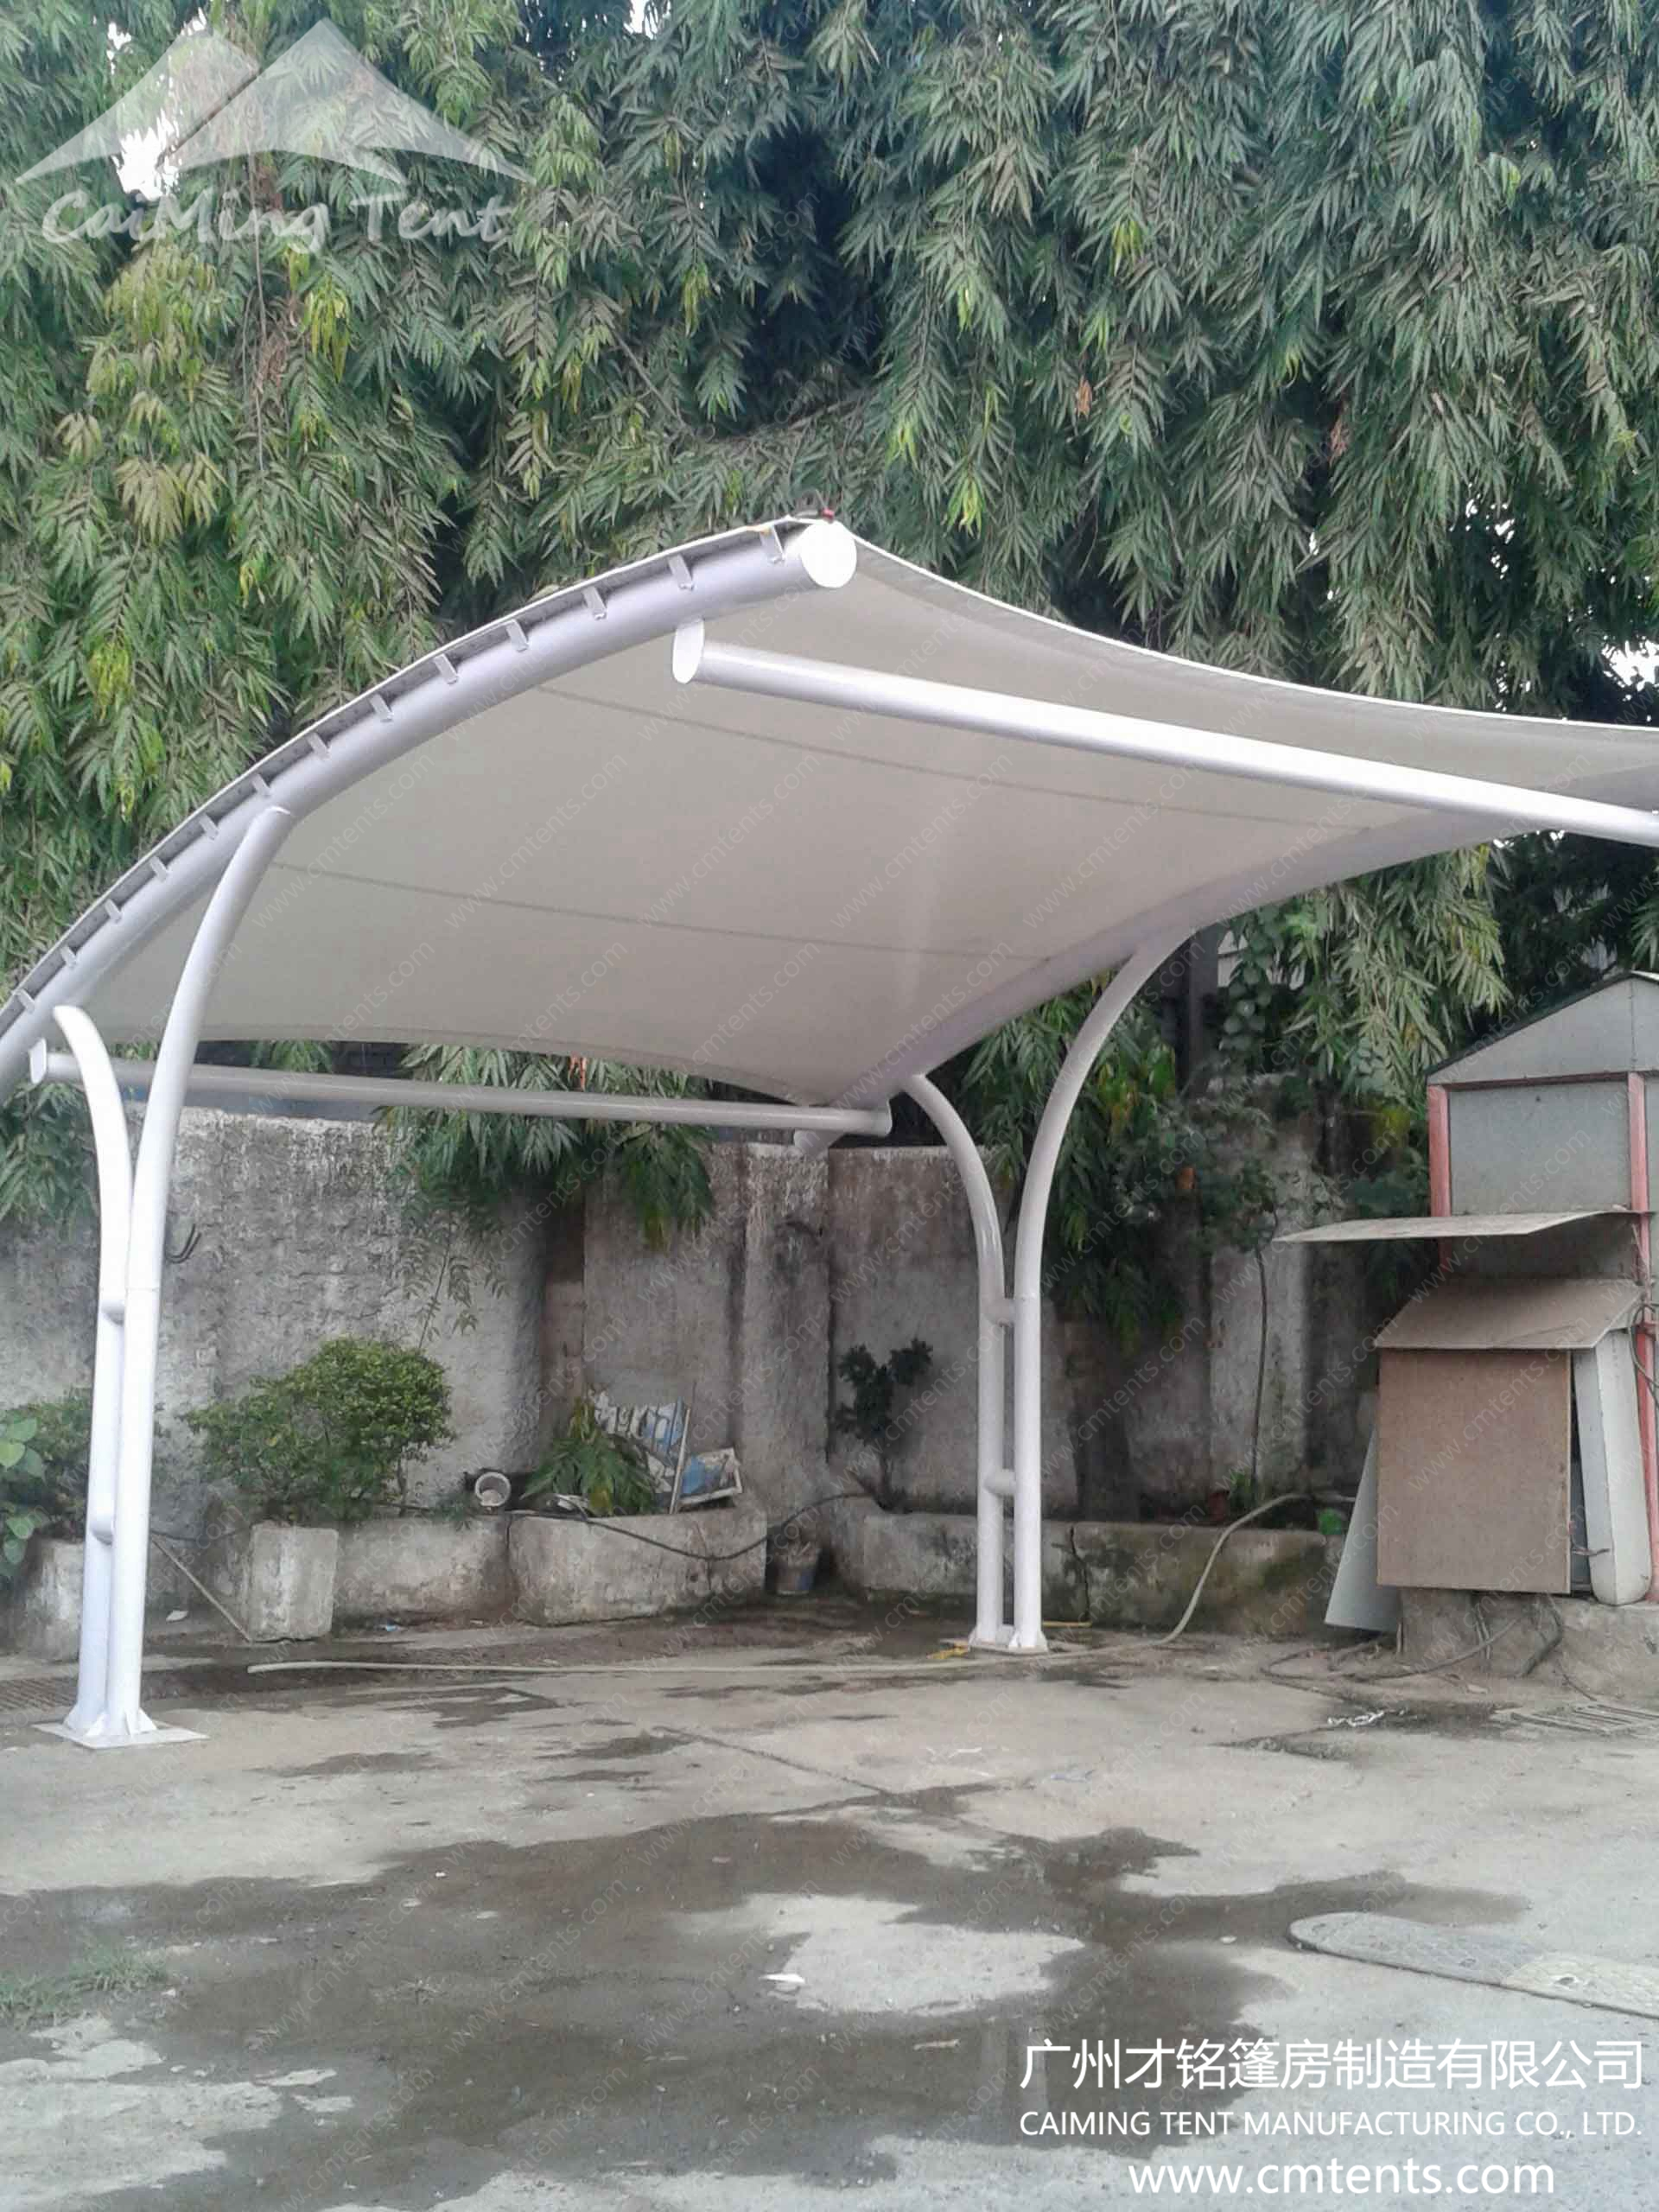 Carport tent guangzhou caiming tent manufacture co ltd for Open carports